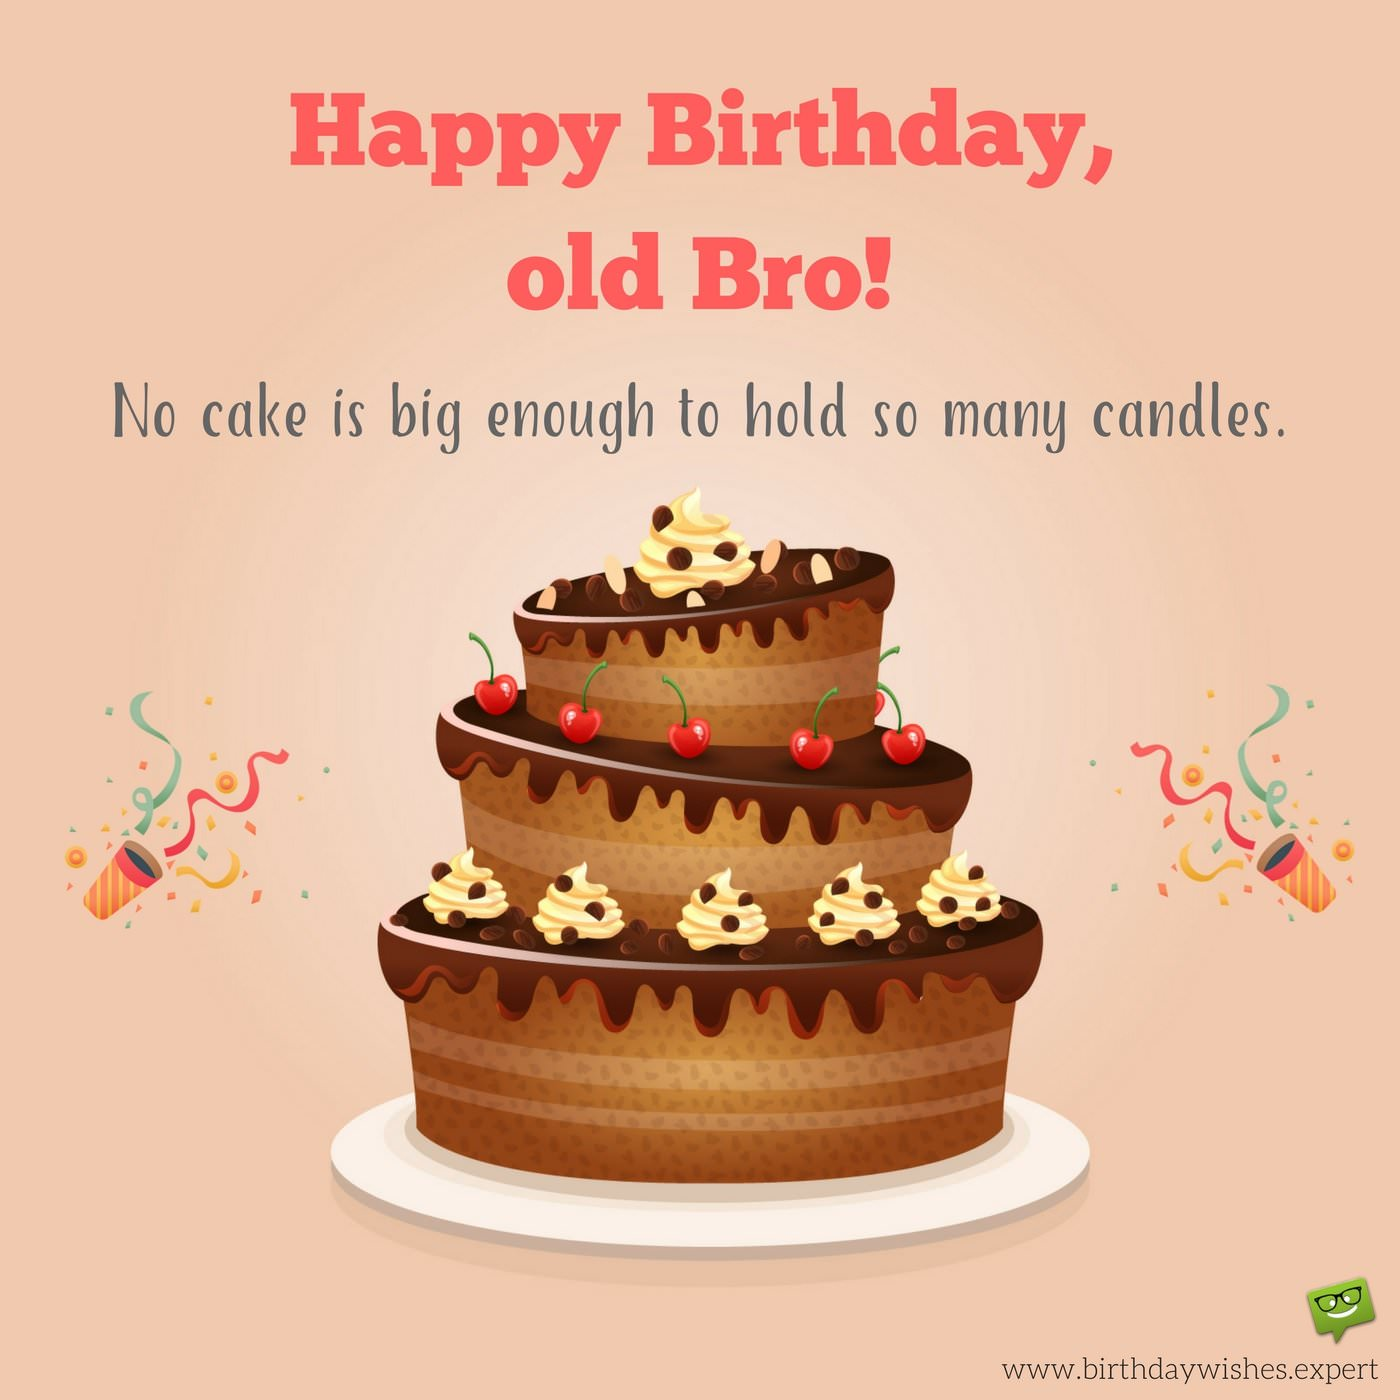 Aint no cake big enough funny birthday wishes for brothers happy birthday old bro there is no cake big enough to hold so many candles m4hsunfo